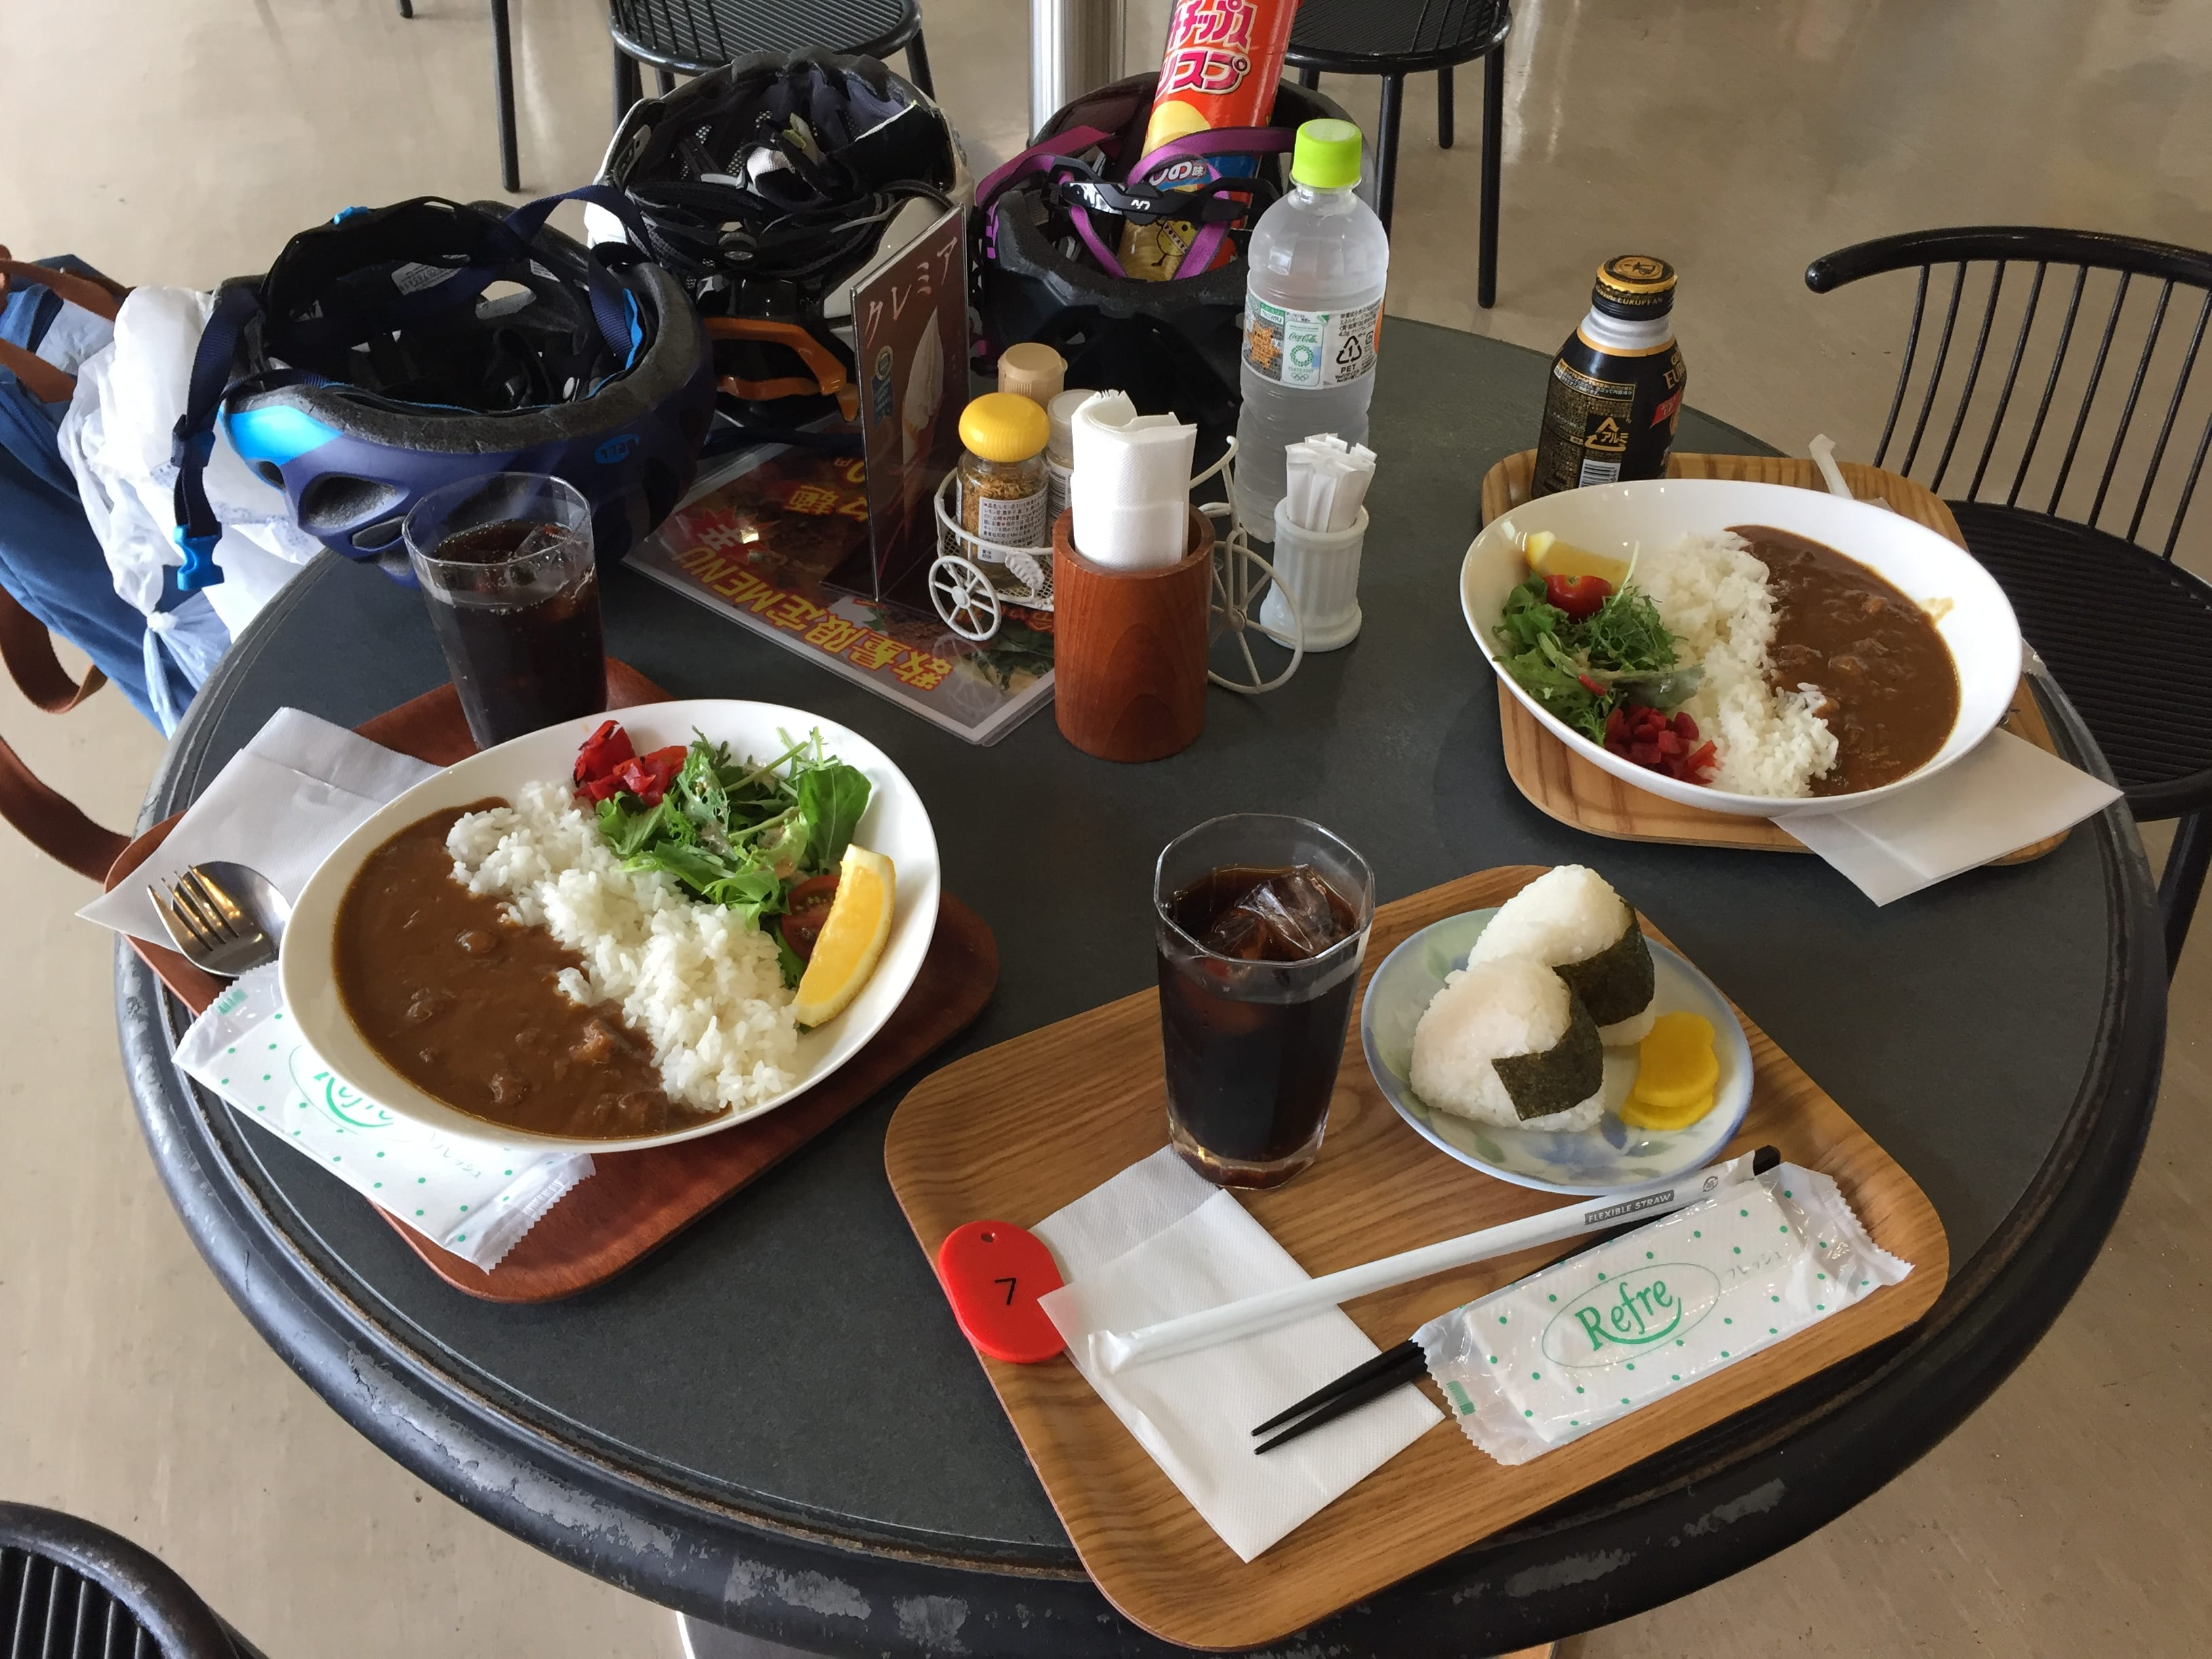 Simple Japanese rice rolls and curry rice dish for our lunch at Setoda Sunset Beach